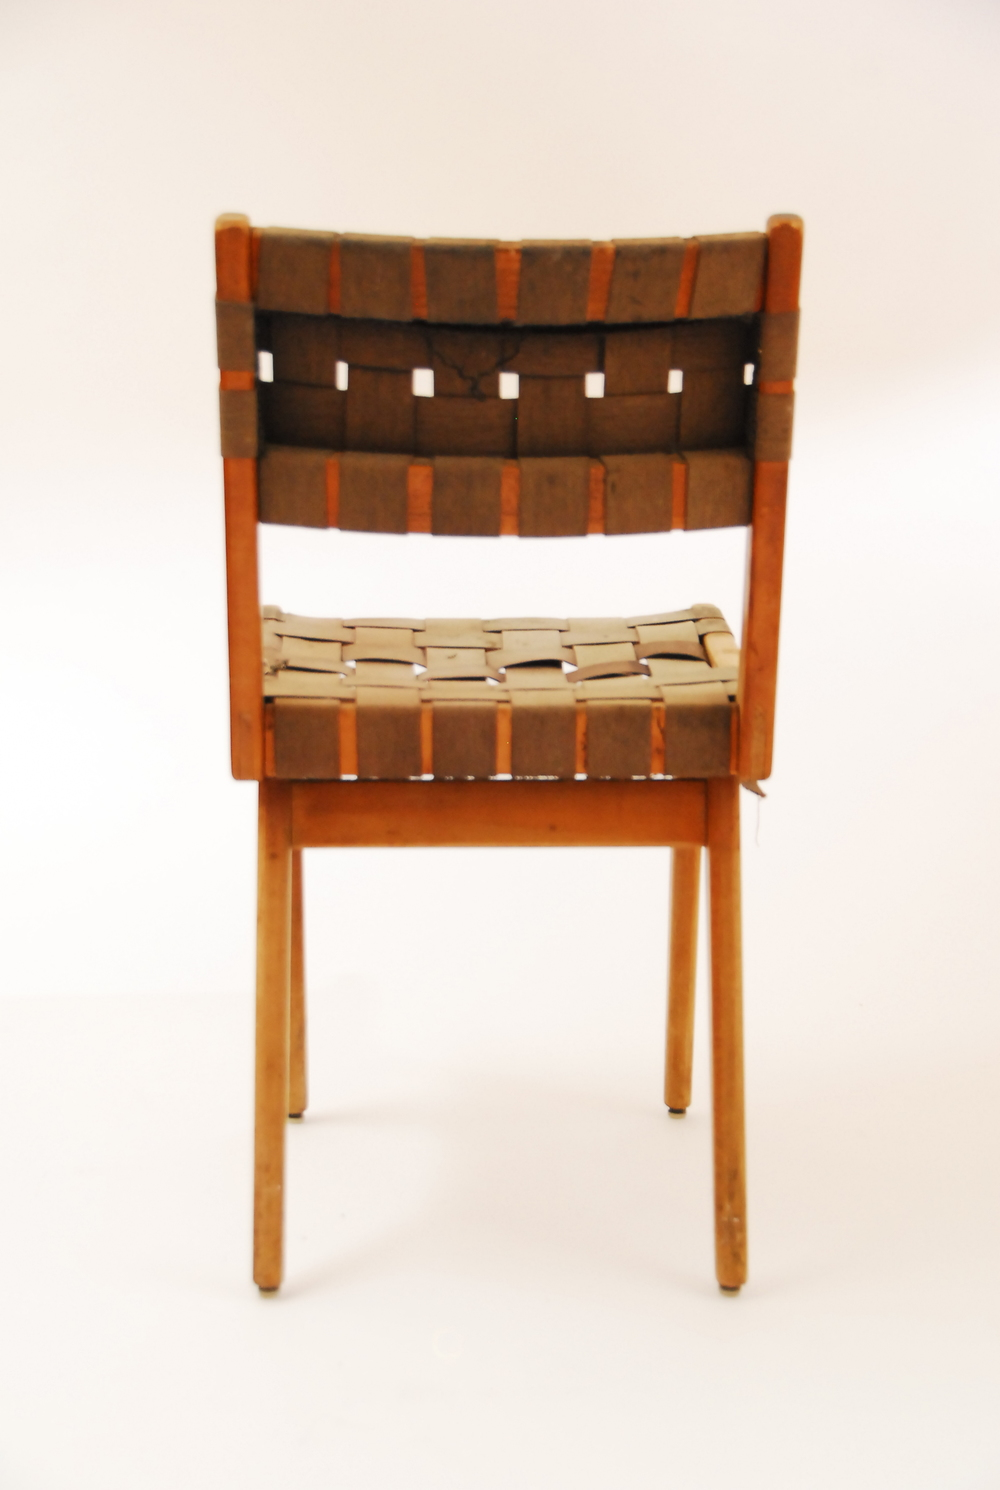 studio_nicco_chair__1341.JPG